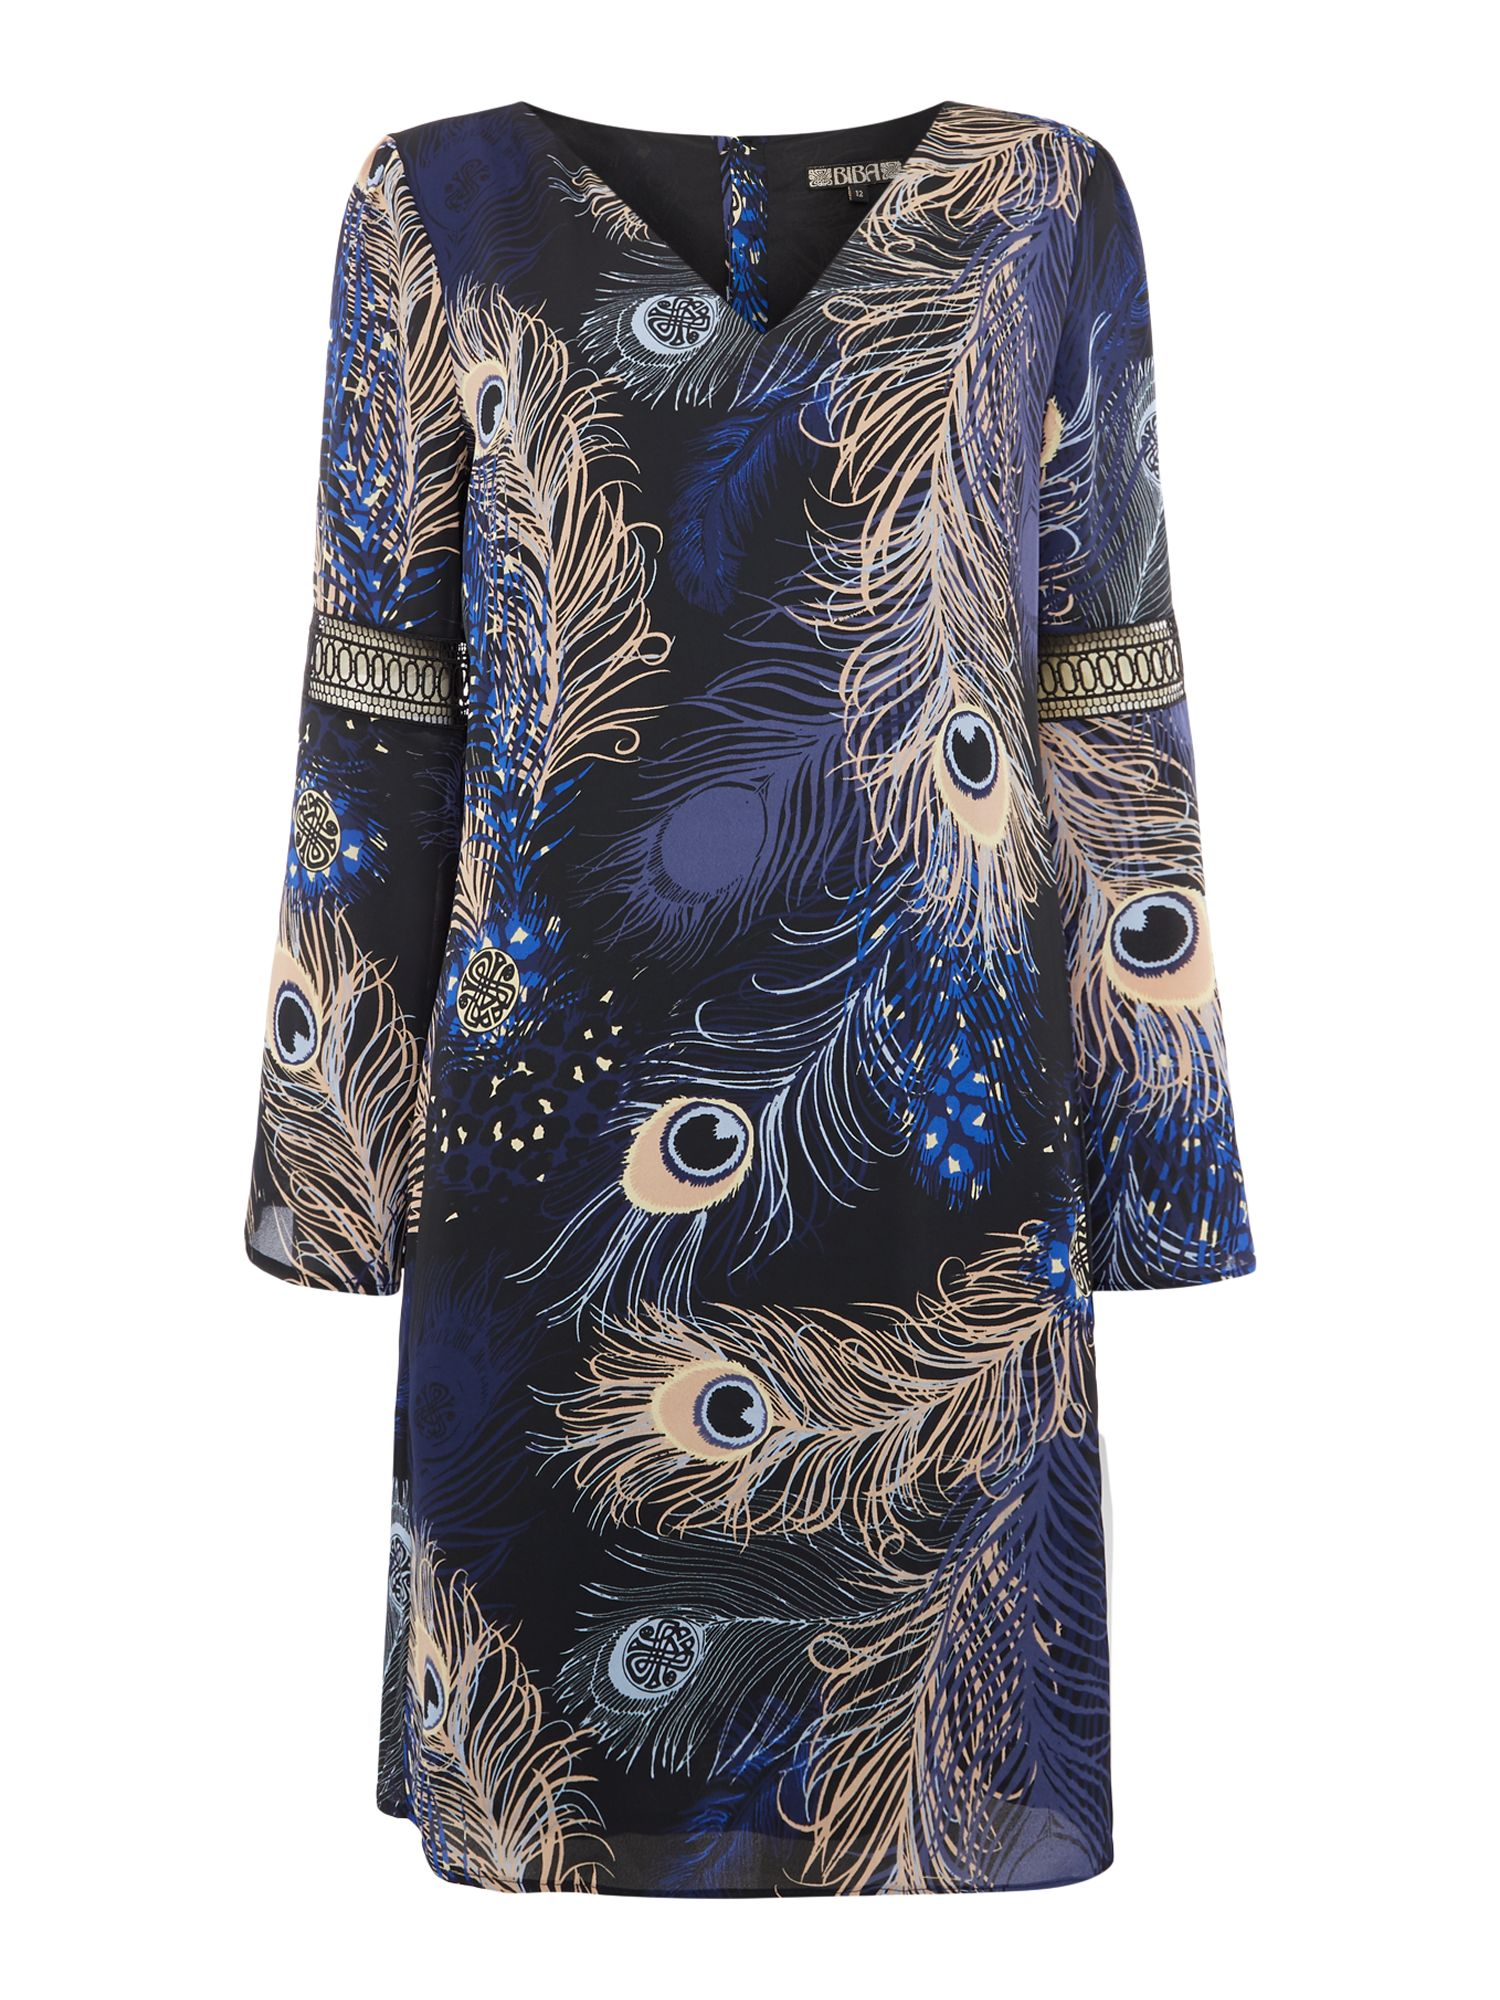 Biba Peacock printed frill sleeve dress, Multi-Coloured